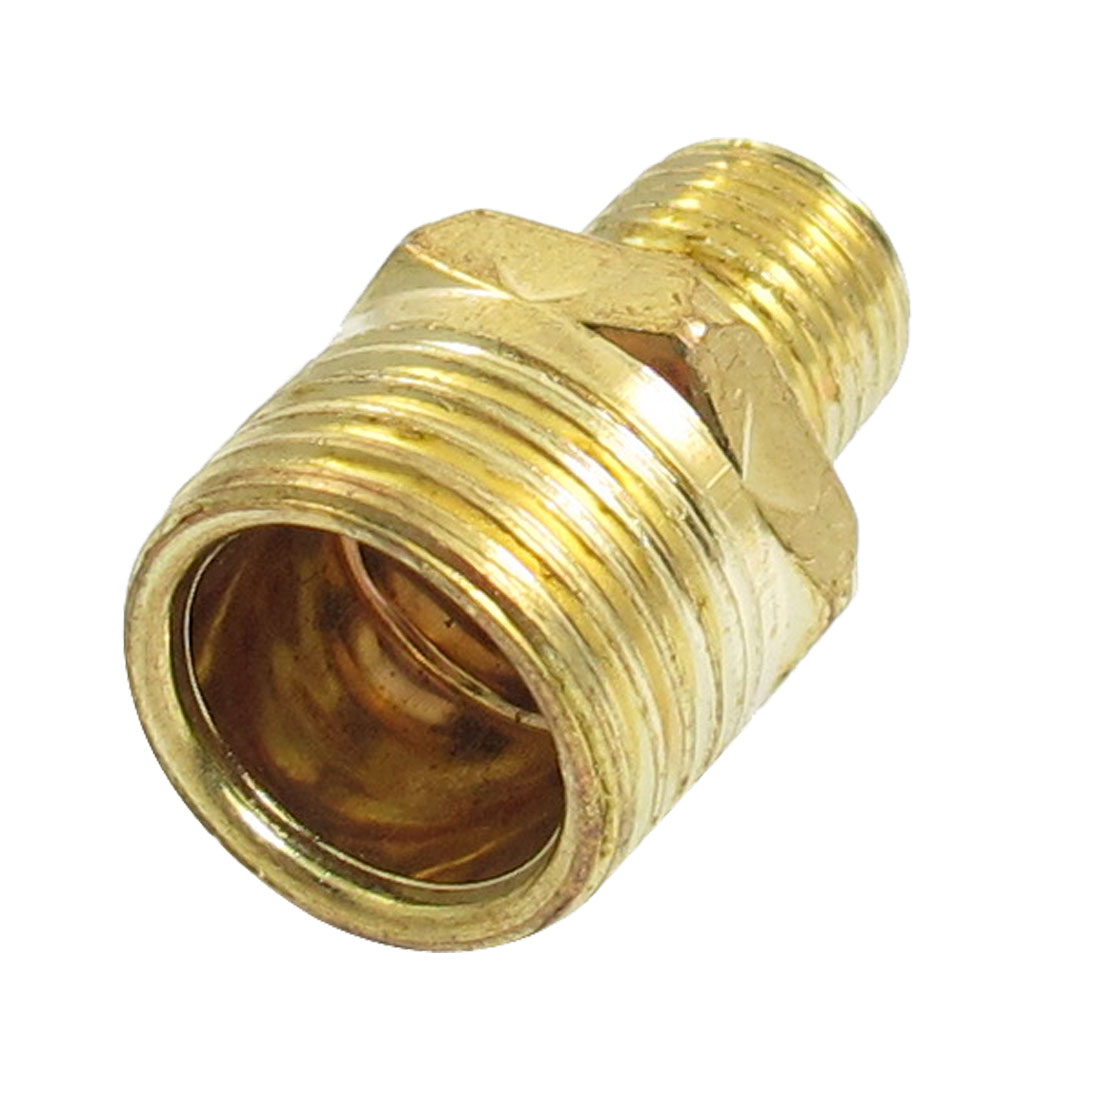 19.5mm to 12.5mm Male Thread Full Port Brass Connector Water Pipe Fitting